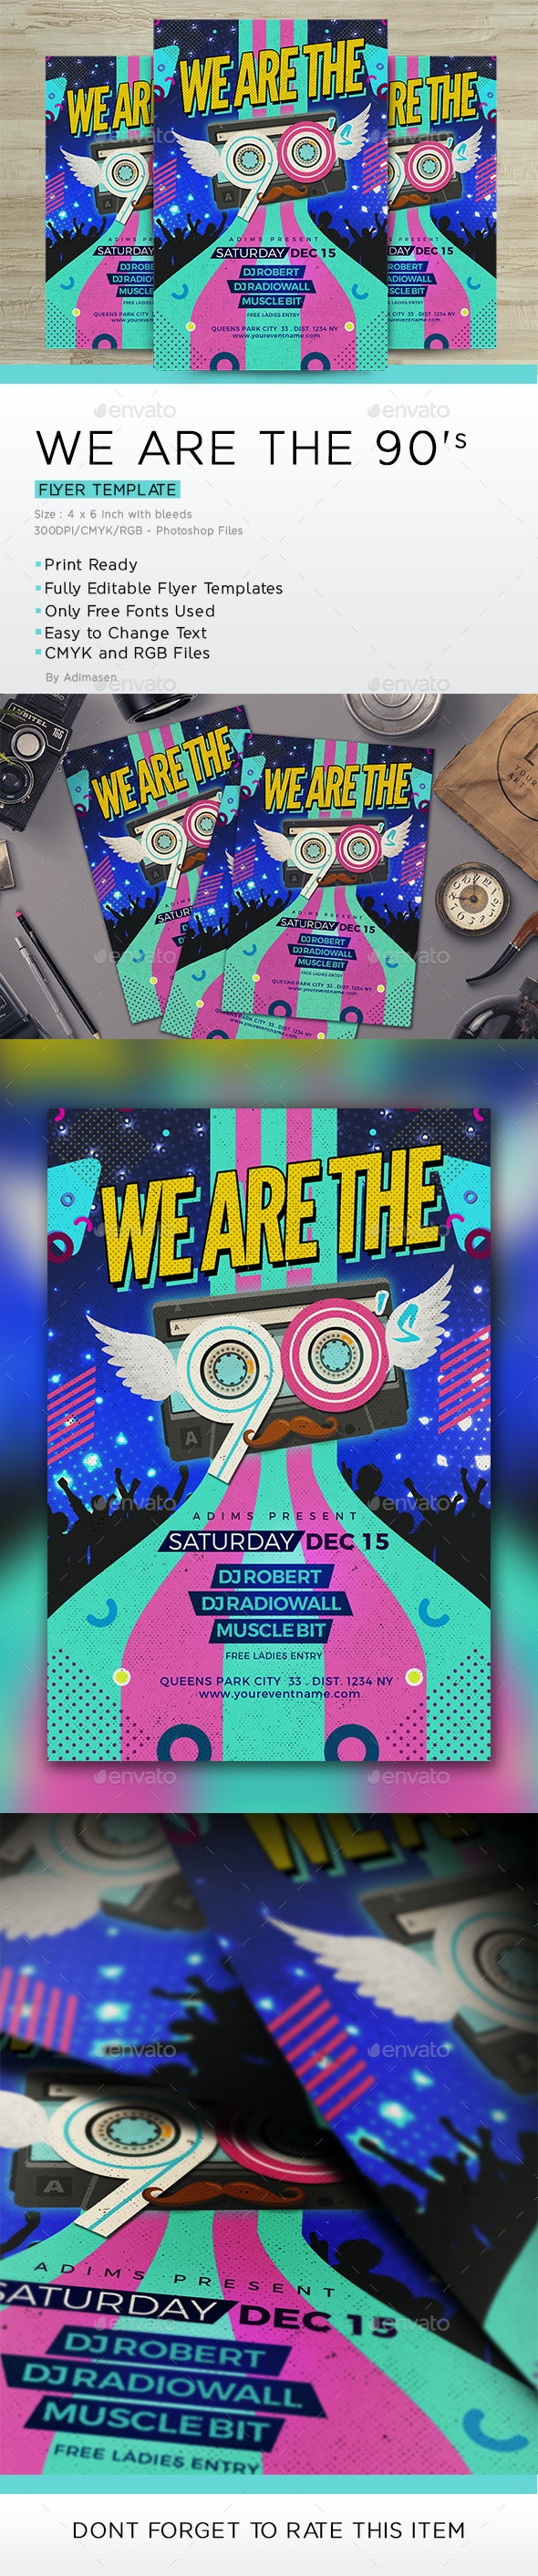 We Are The 90's Flyer - Events Flyers